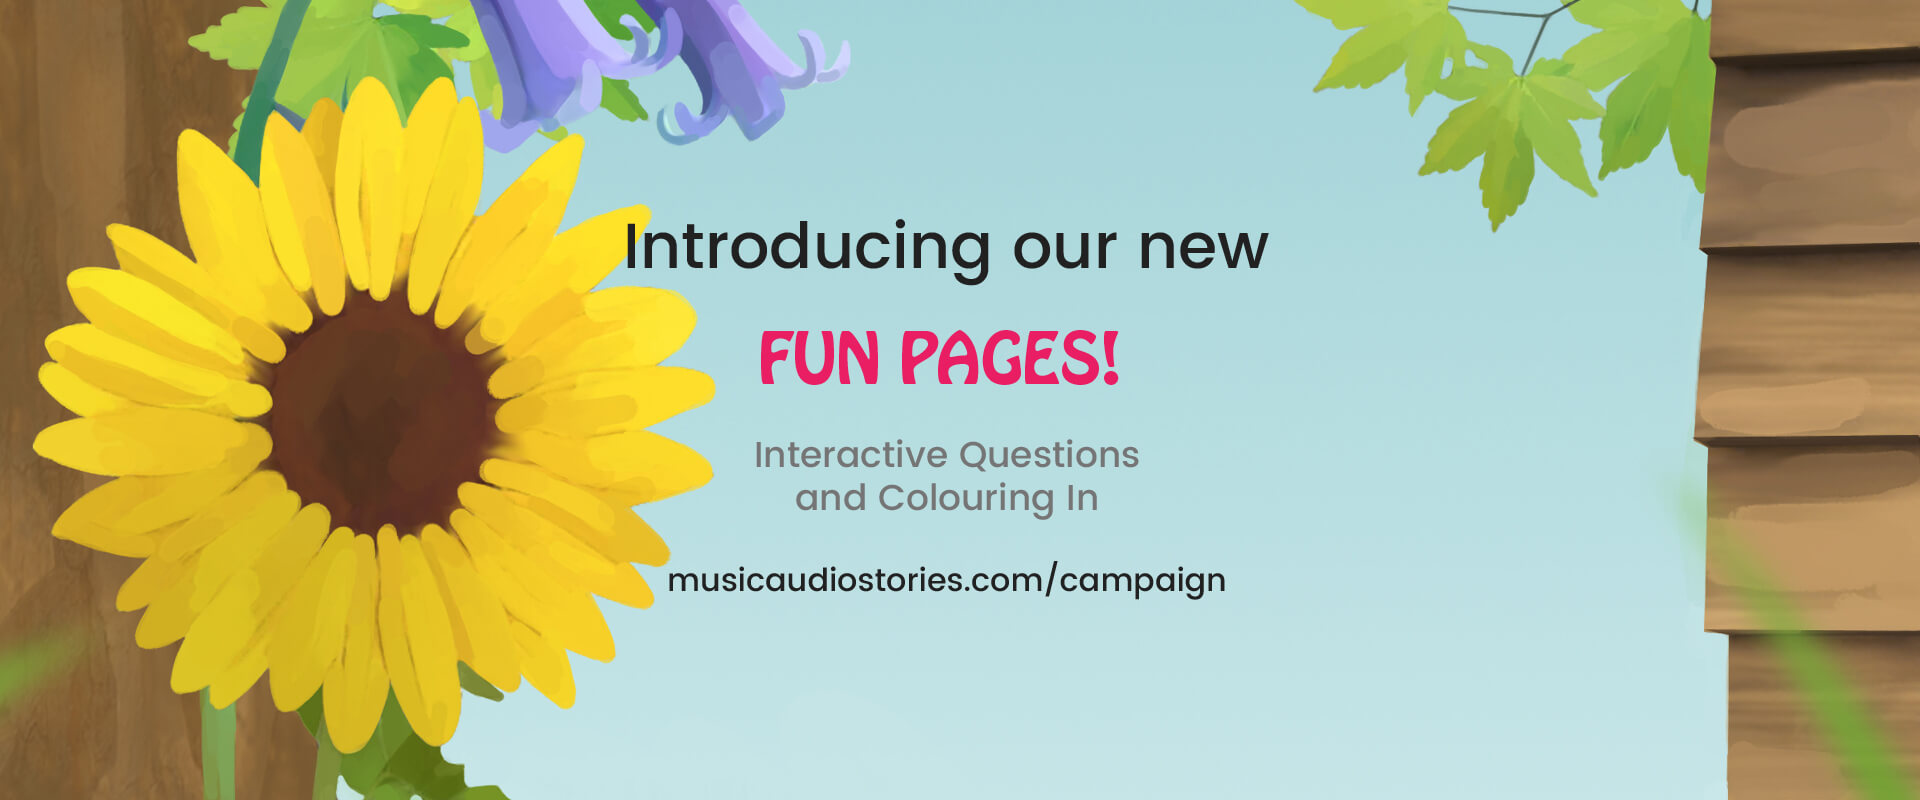 Introducing our Children's Fun Pages image